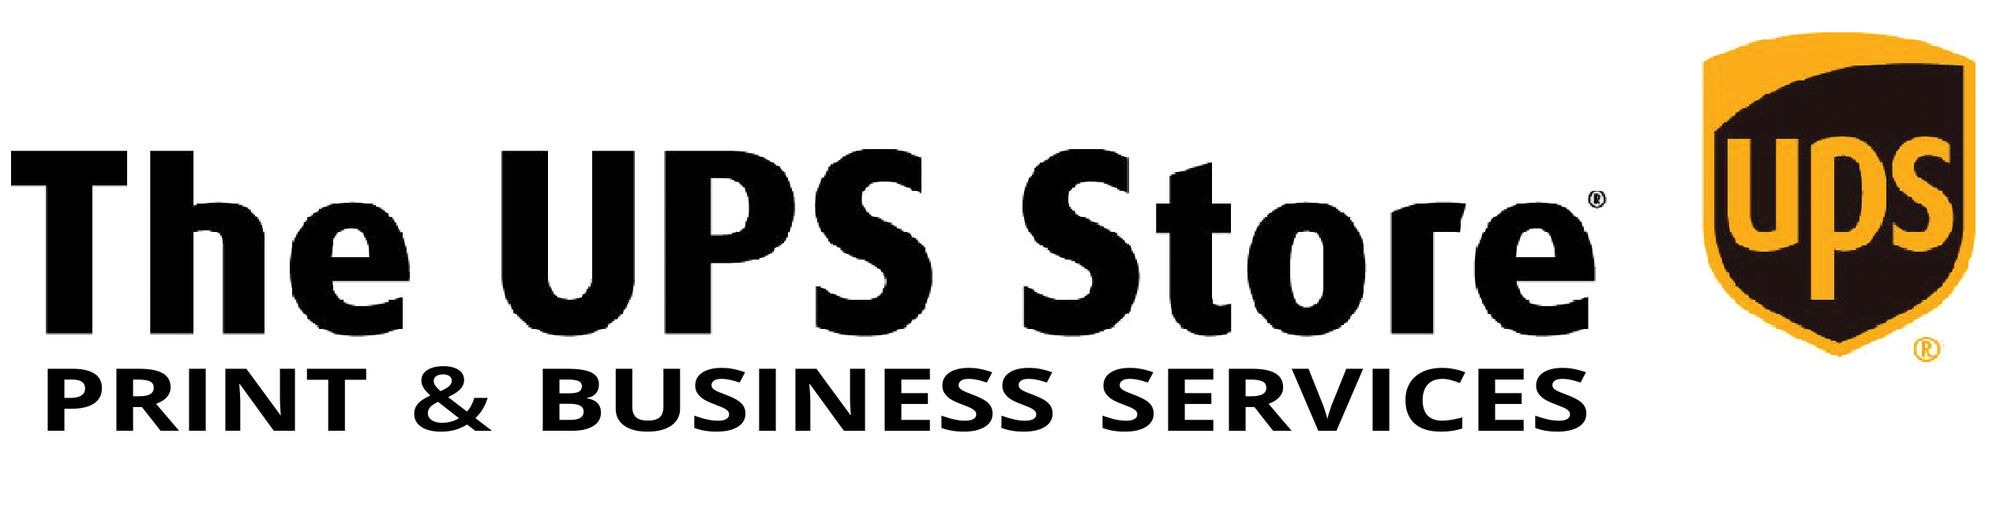 The UPS Store. Print & Business Services